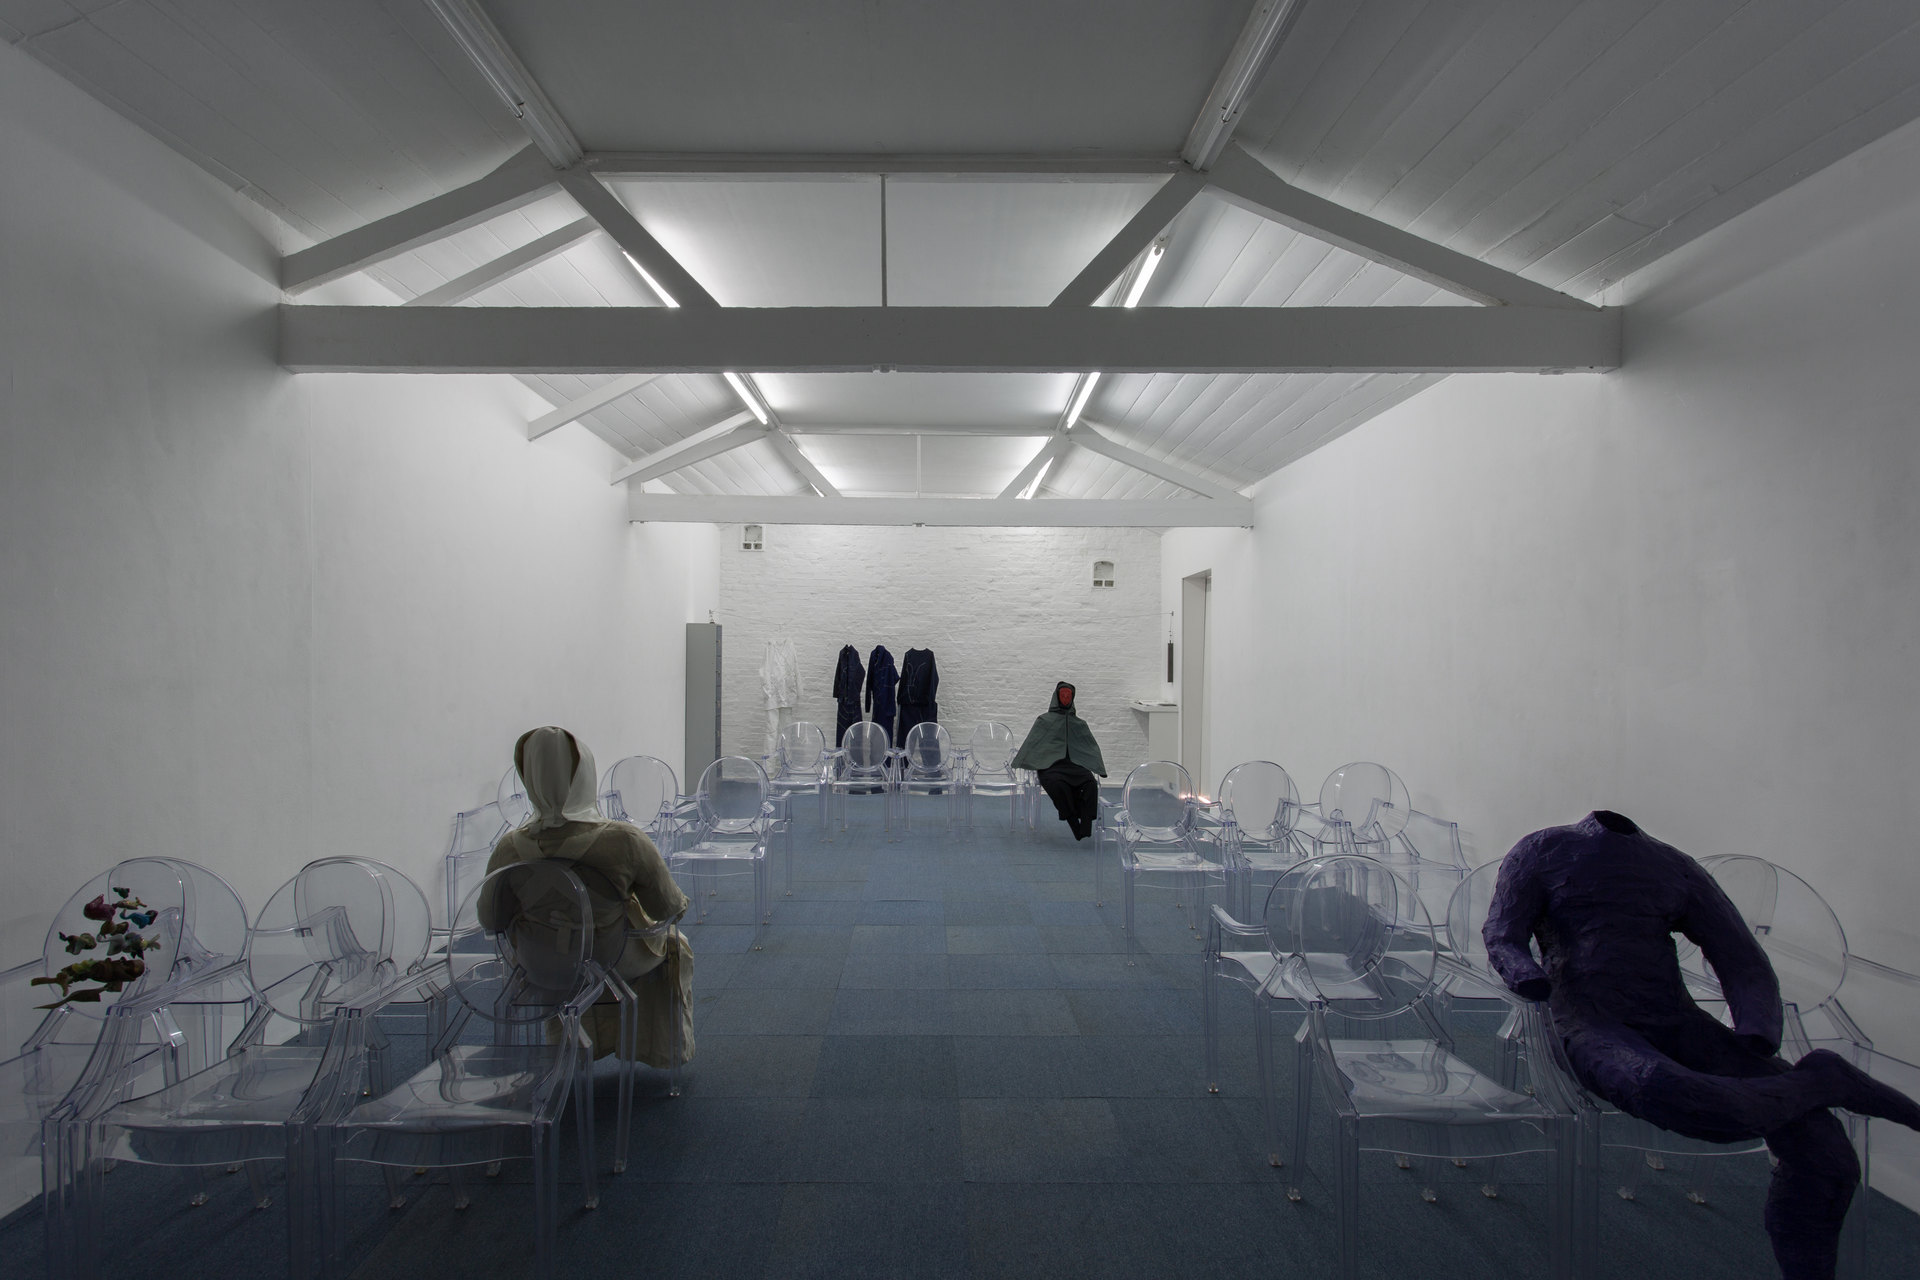 Angharad Williams and Mathis Gasser, 'Waiting Room', 2018, Hergest:Nant, Cell Project Space